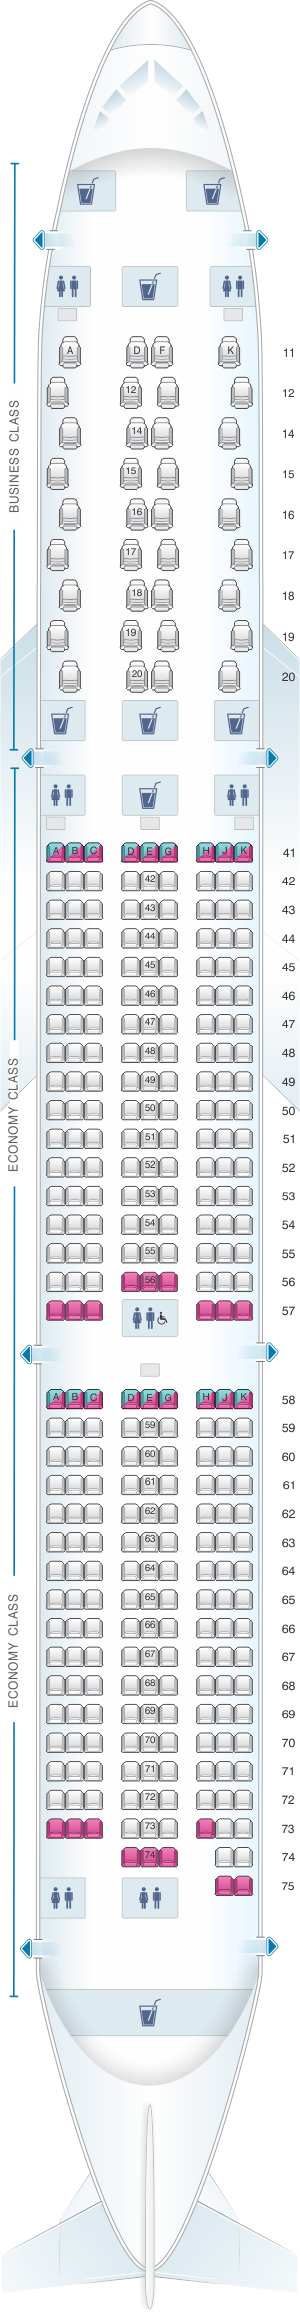 Seat map for Singapore Airlines Boeing B787 10